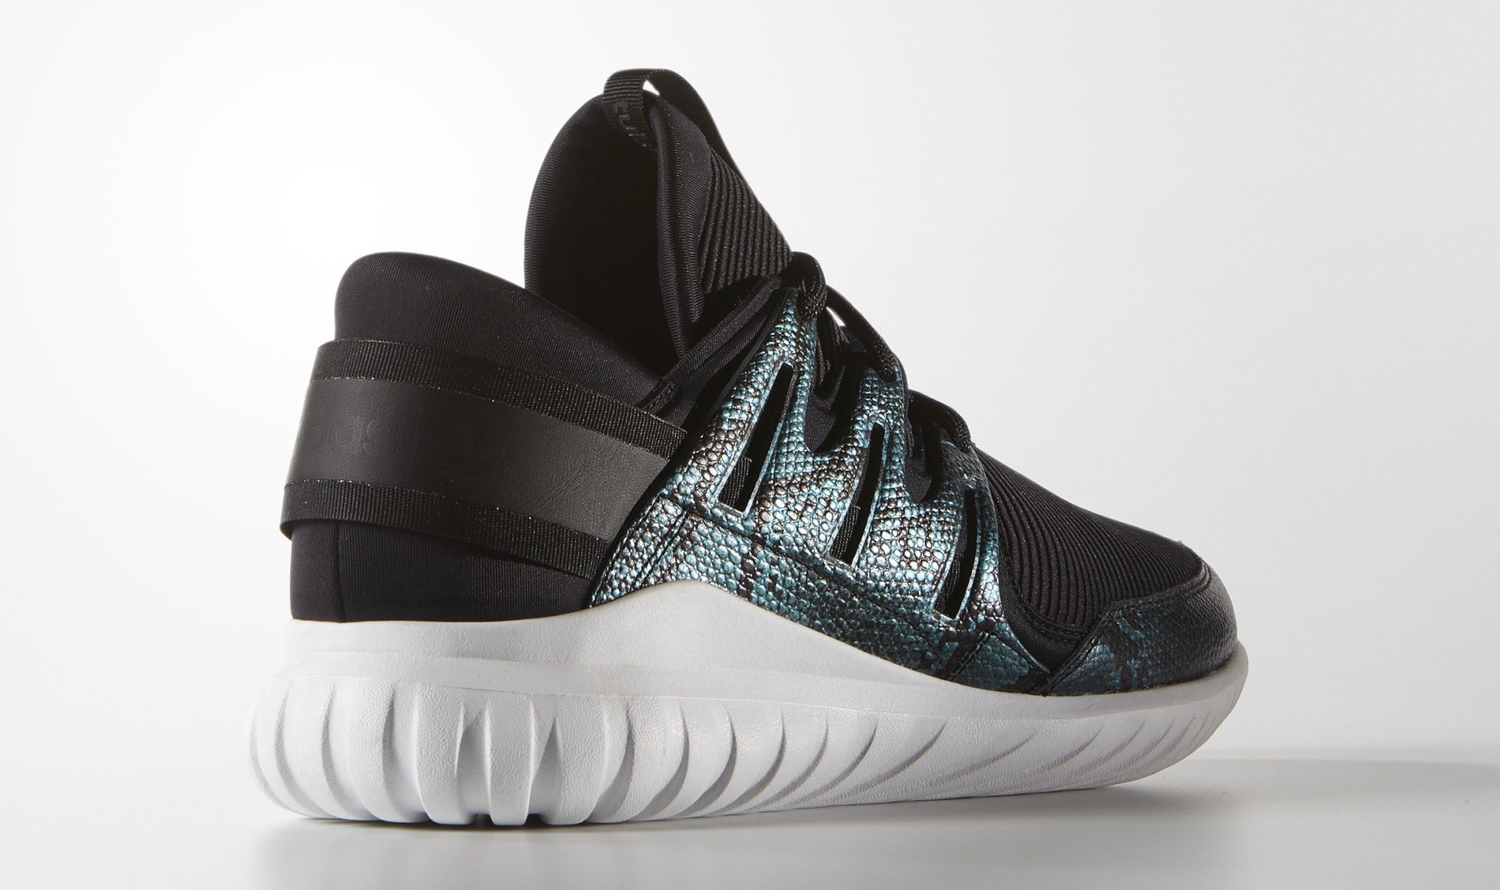 88fc5e7d282bb4 This adidas Tubular Nova offering is available now from adidas here.